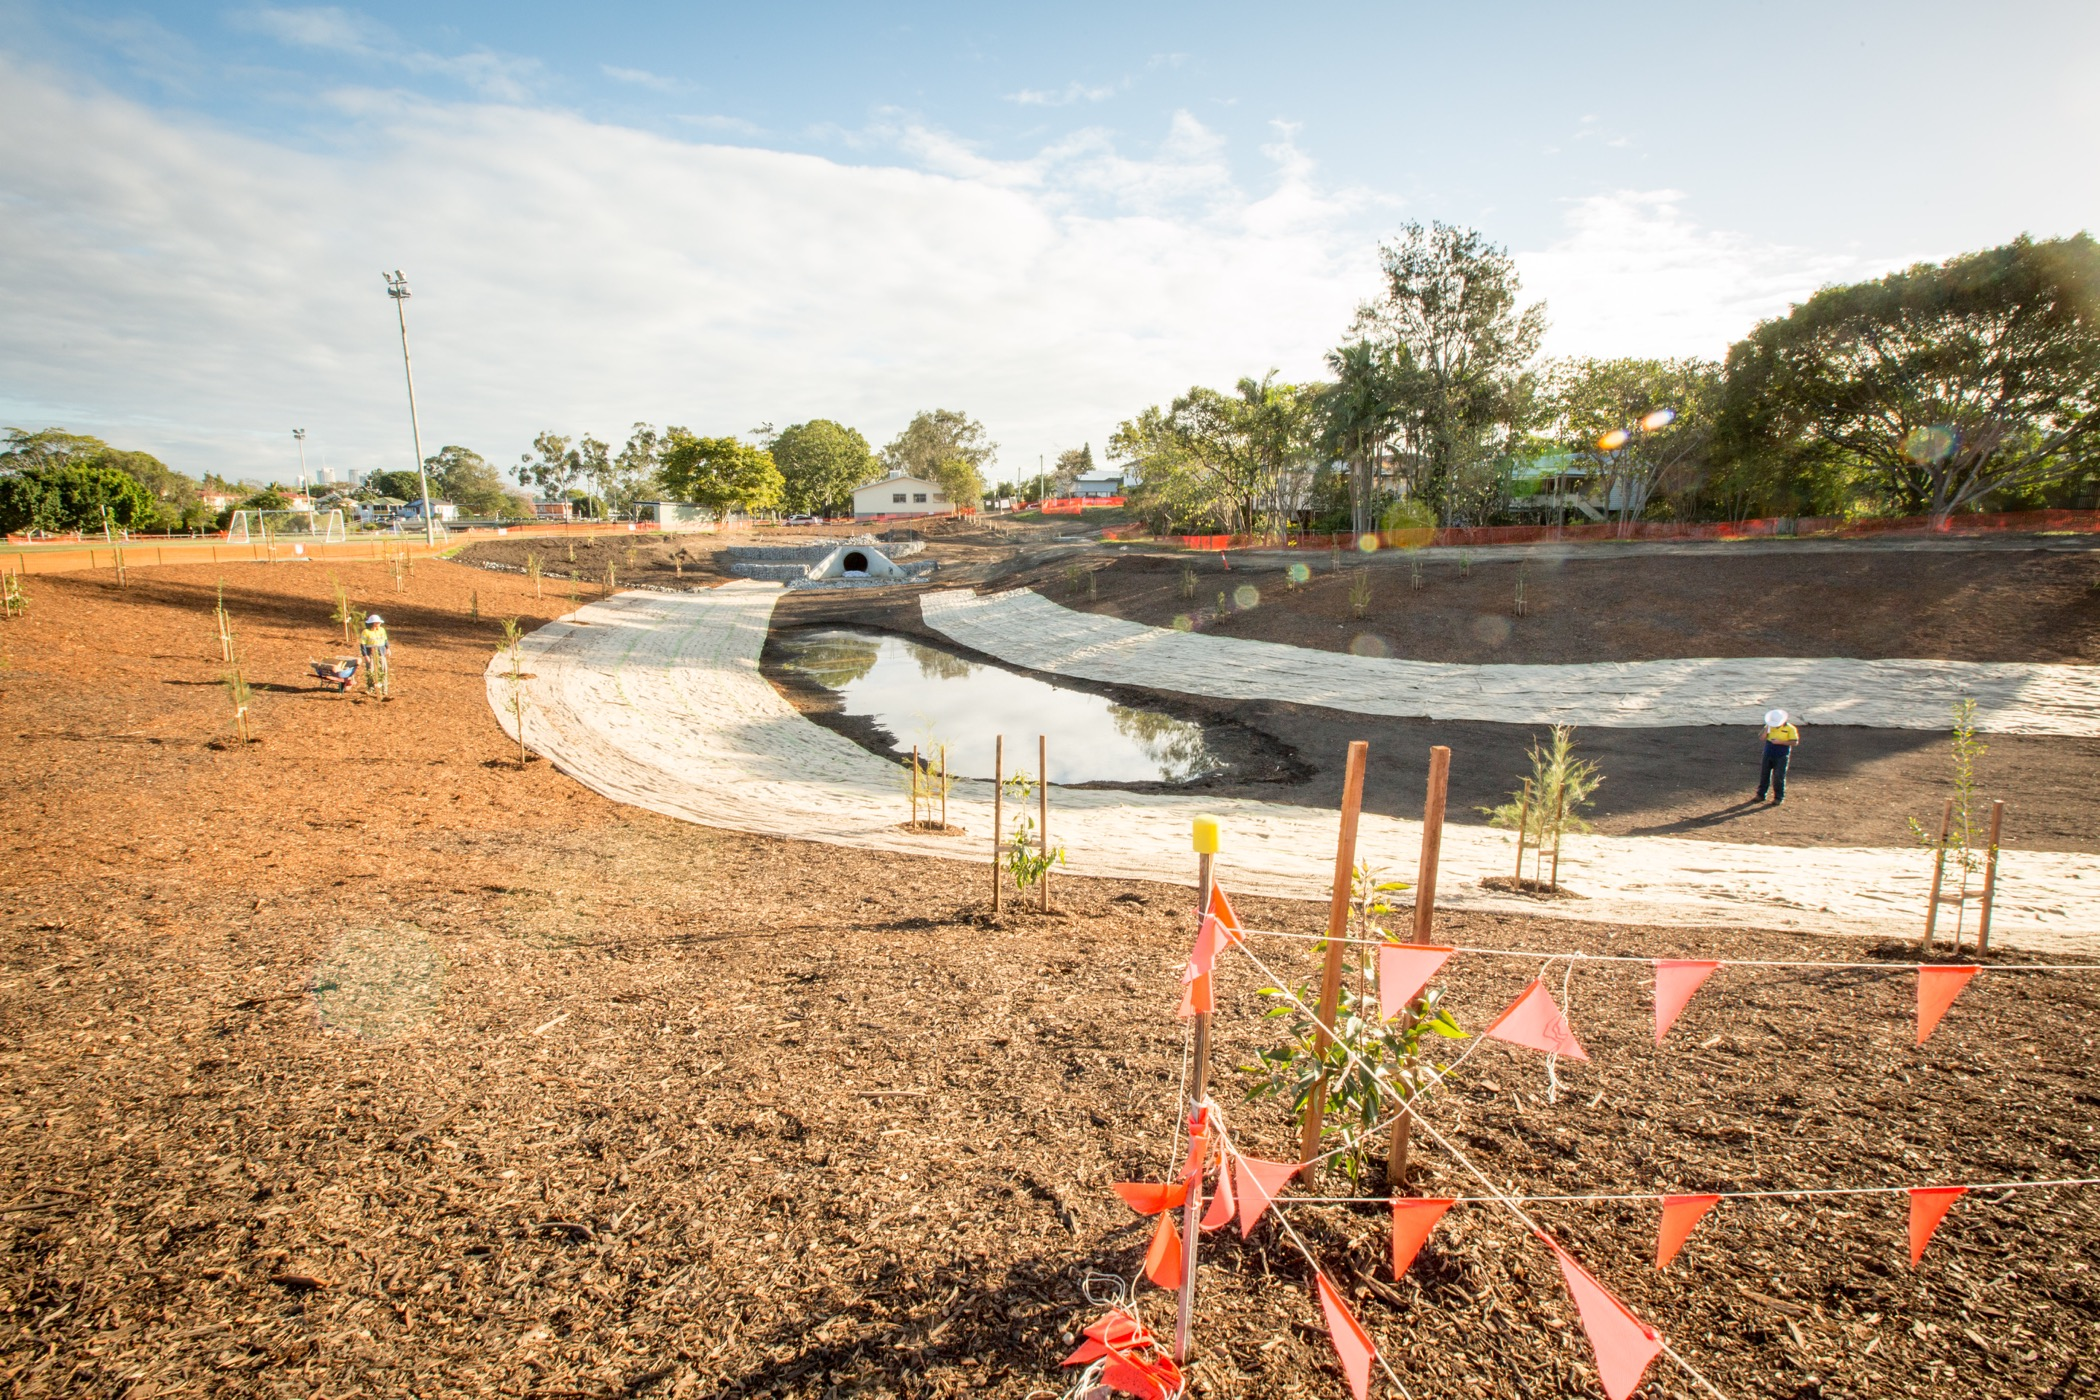 Brisbane City Council Stormwater Harvesting Project